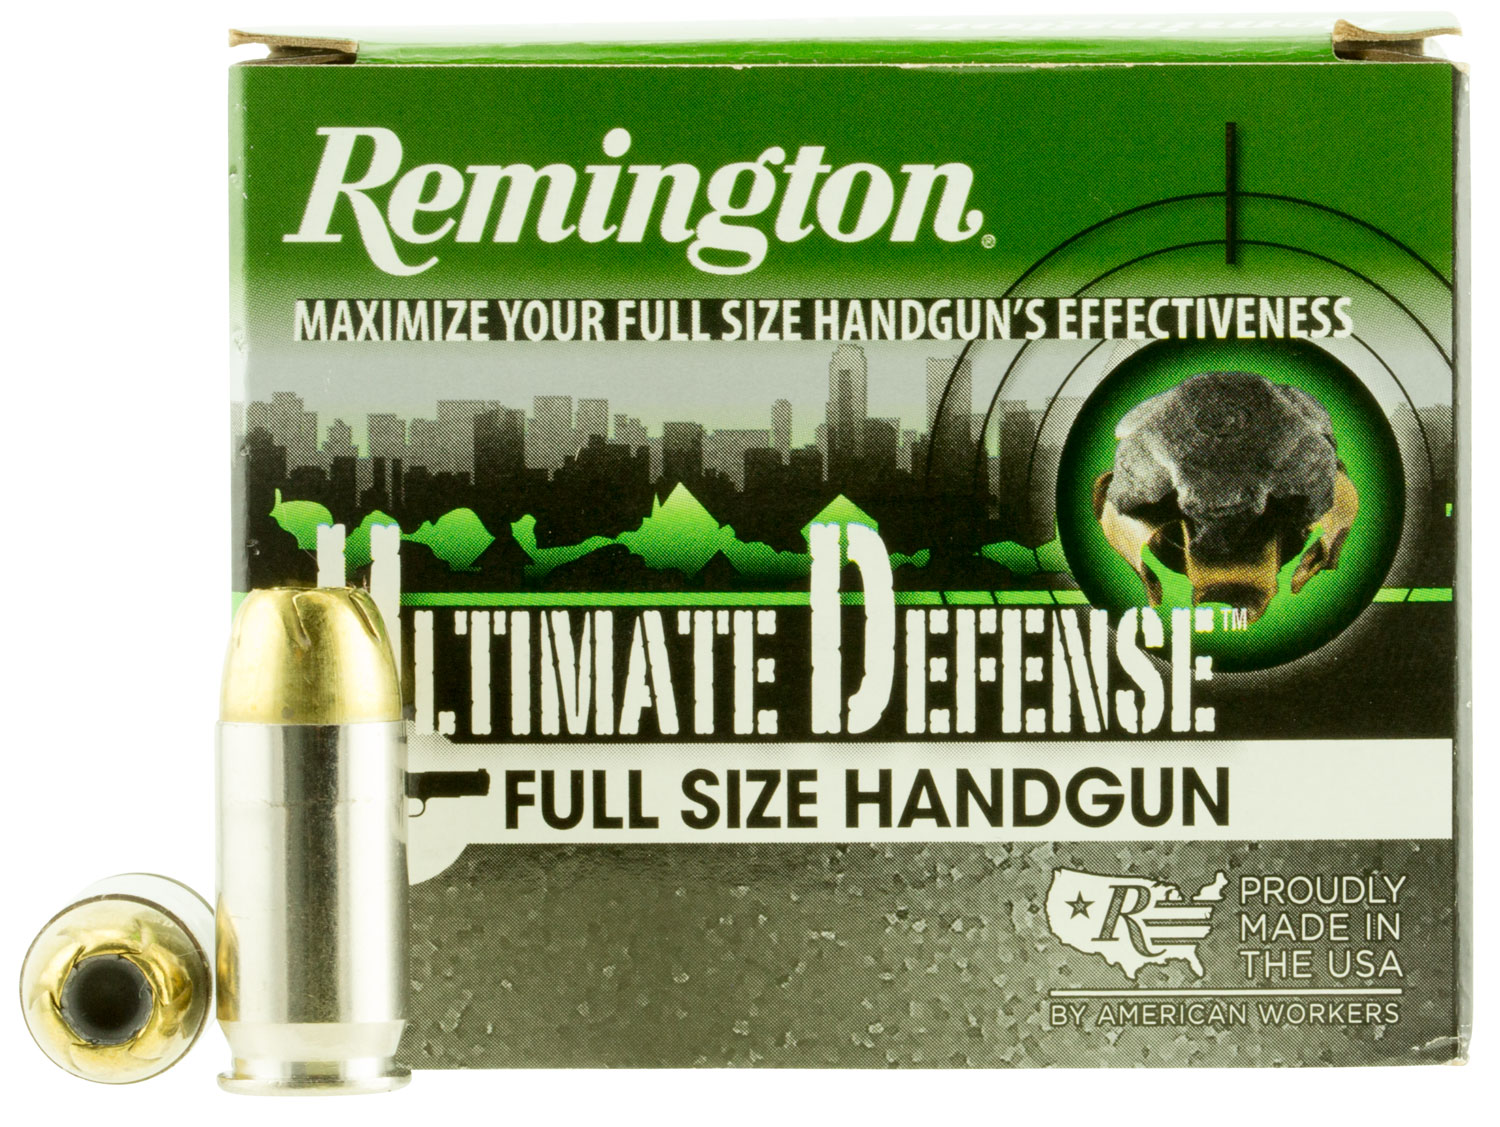 Remington Ammunition HD45APC Ultimate Defense Full Size Handgun 45 Automatic Colt Pistol (ACP) 185 GR Brass Jacket Hollow Point 20 Bx/ 25 Cs